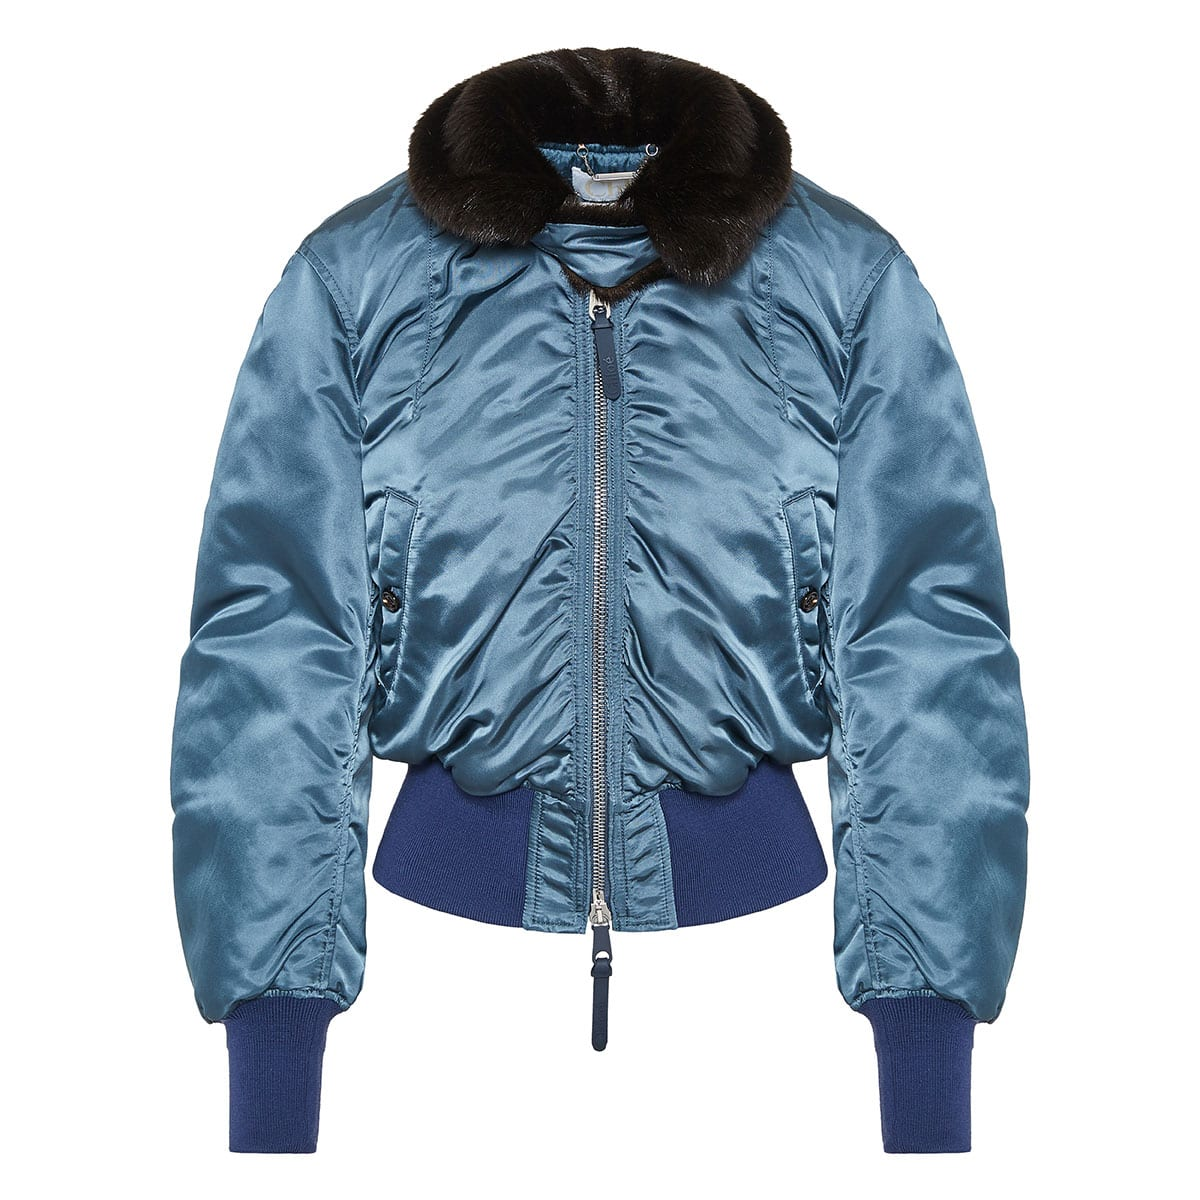 Fur-collar satin bomber jacket